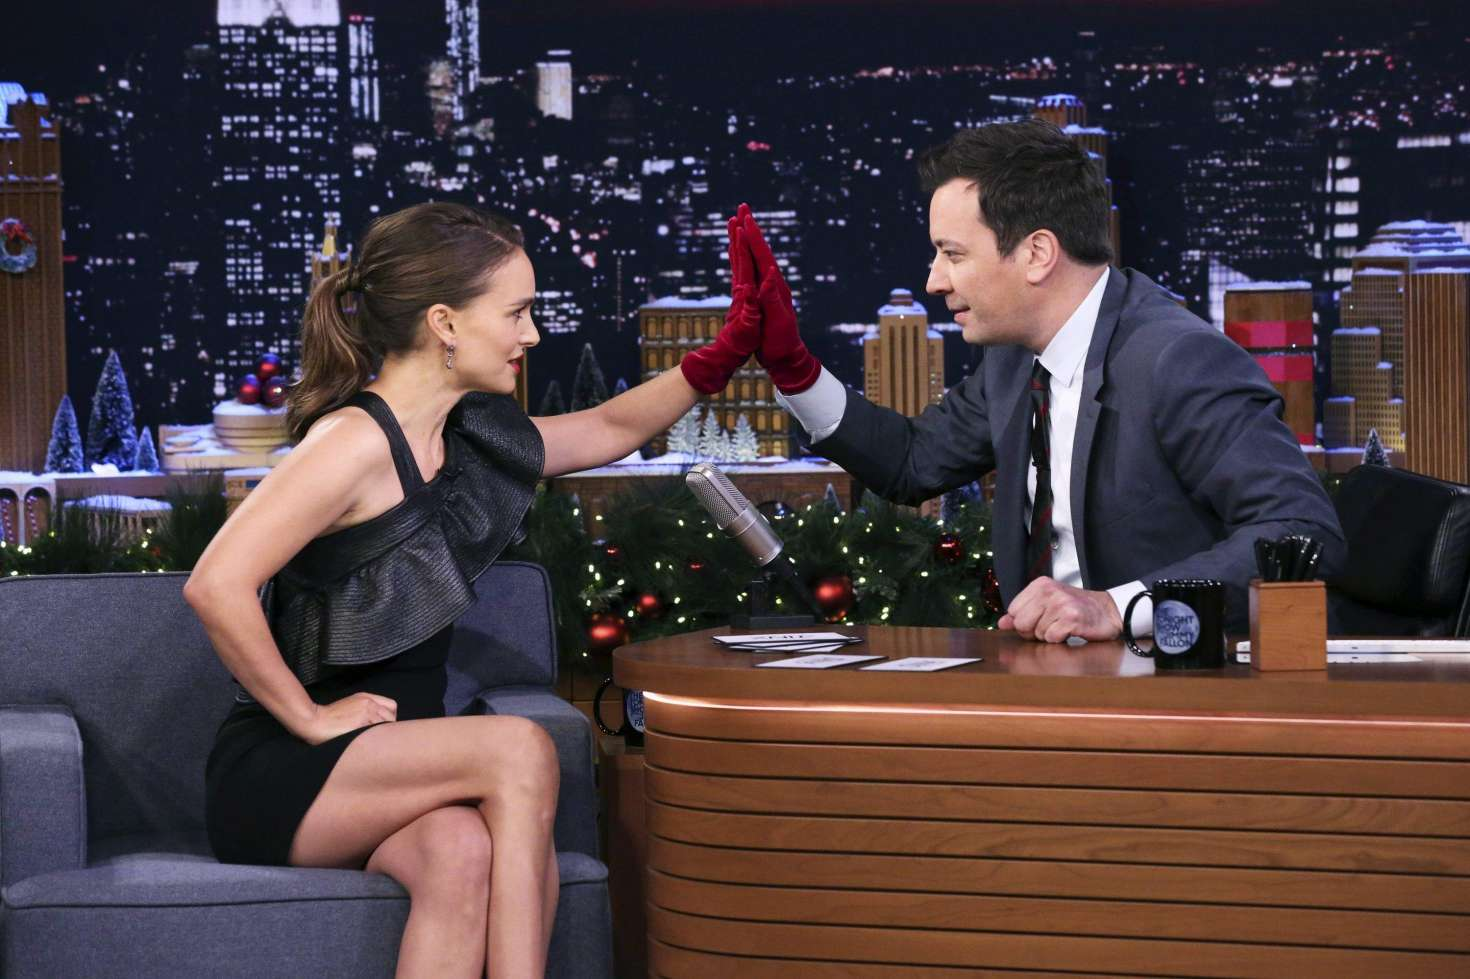 Natalie Portman 2018 : Natalie Portman: The Tonight Show Starring Jimmy Fallon -02